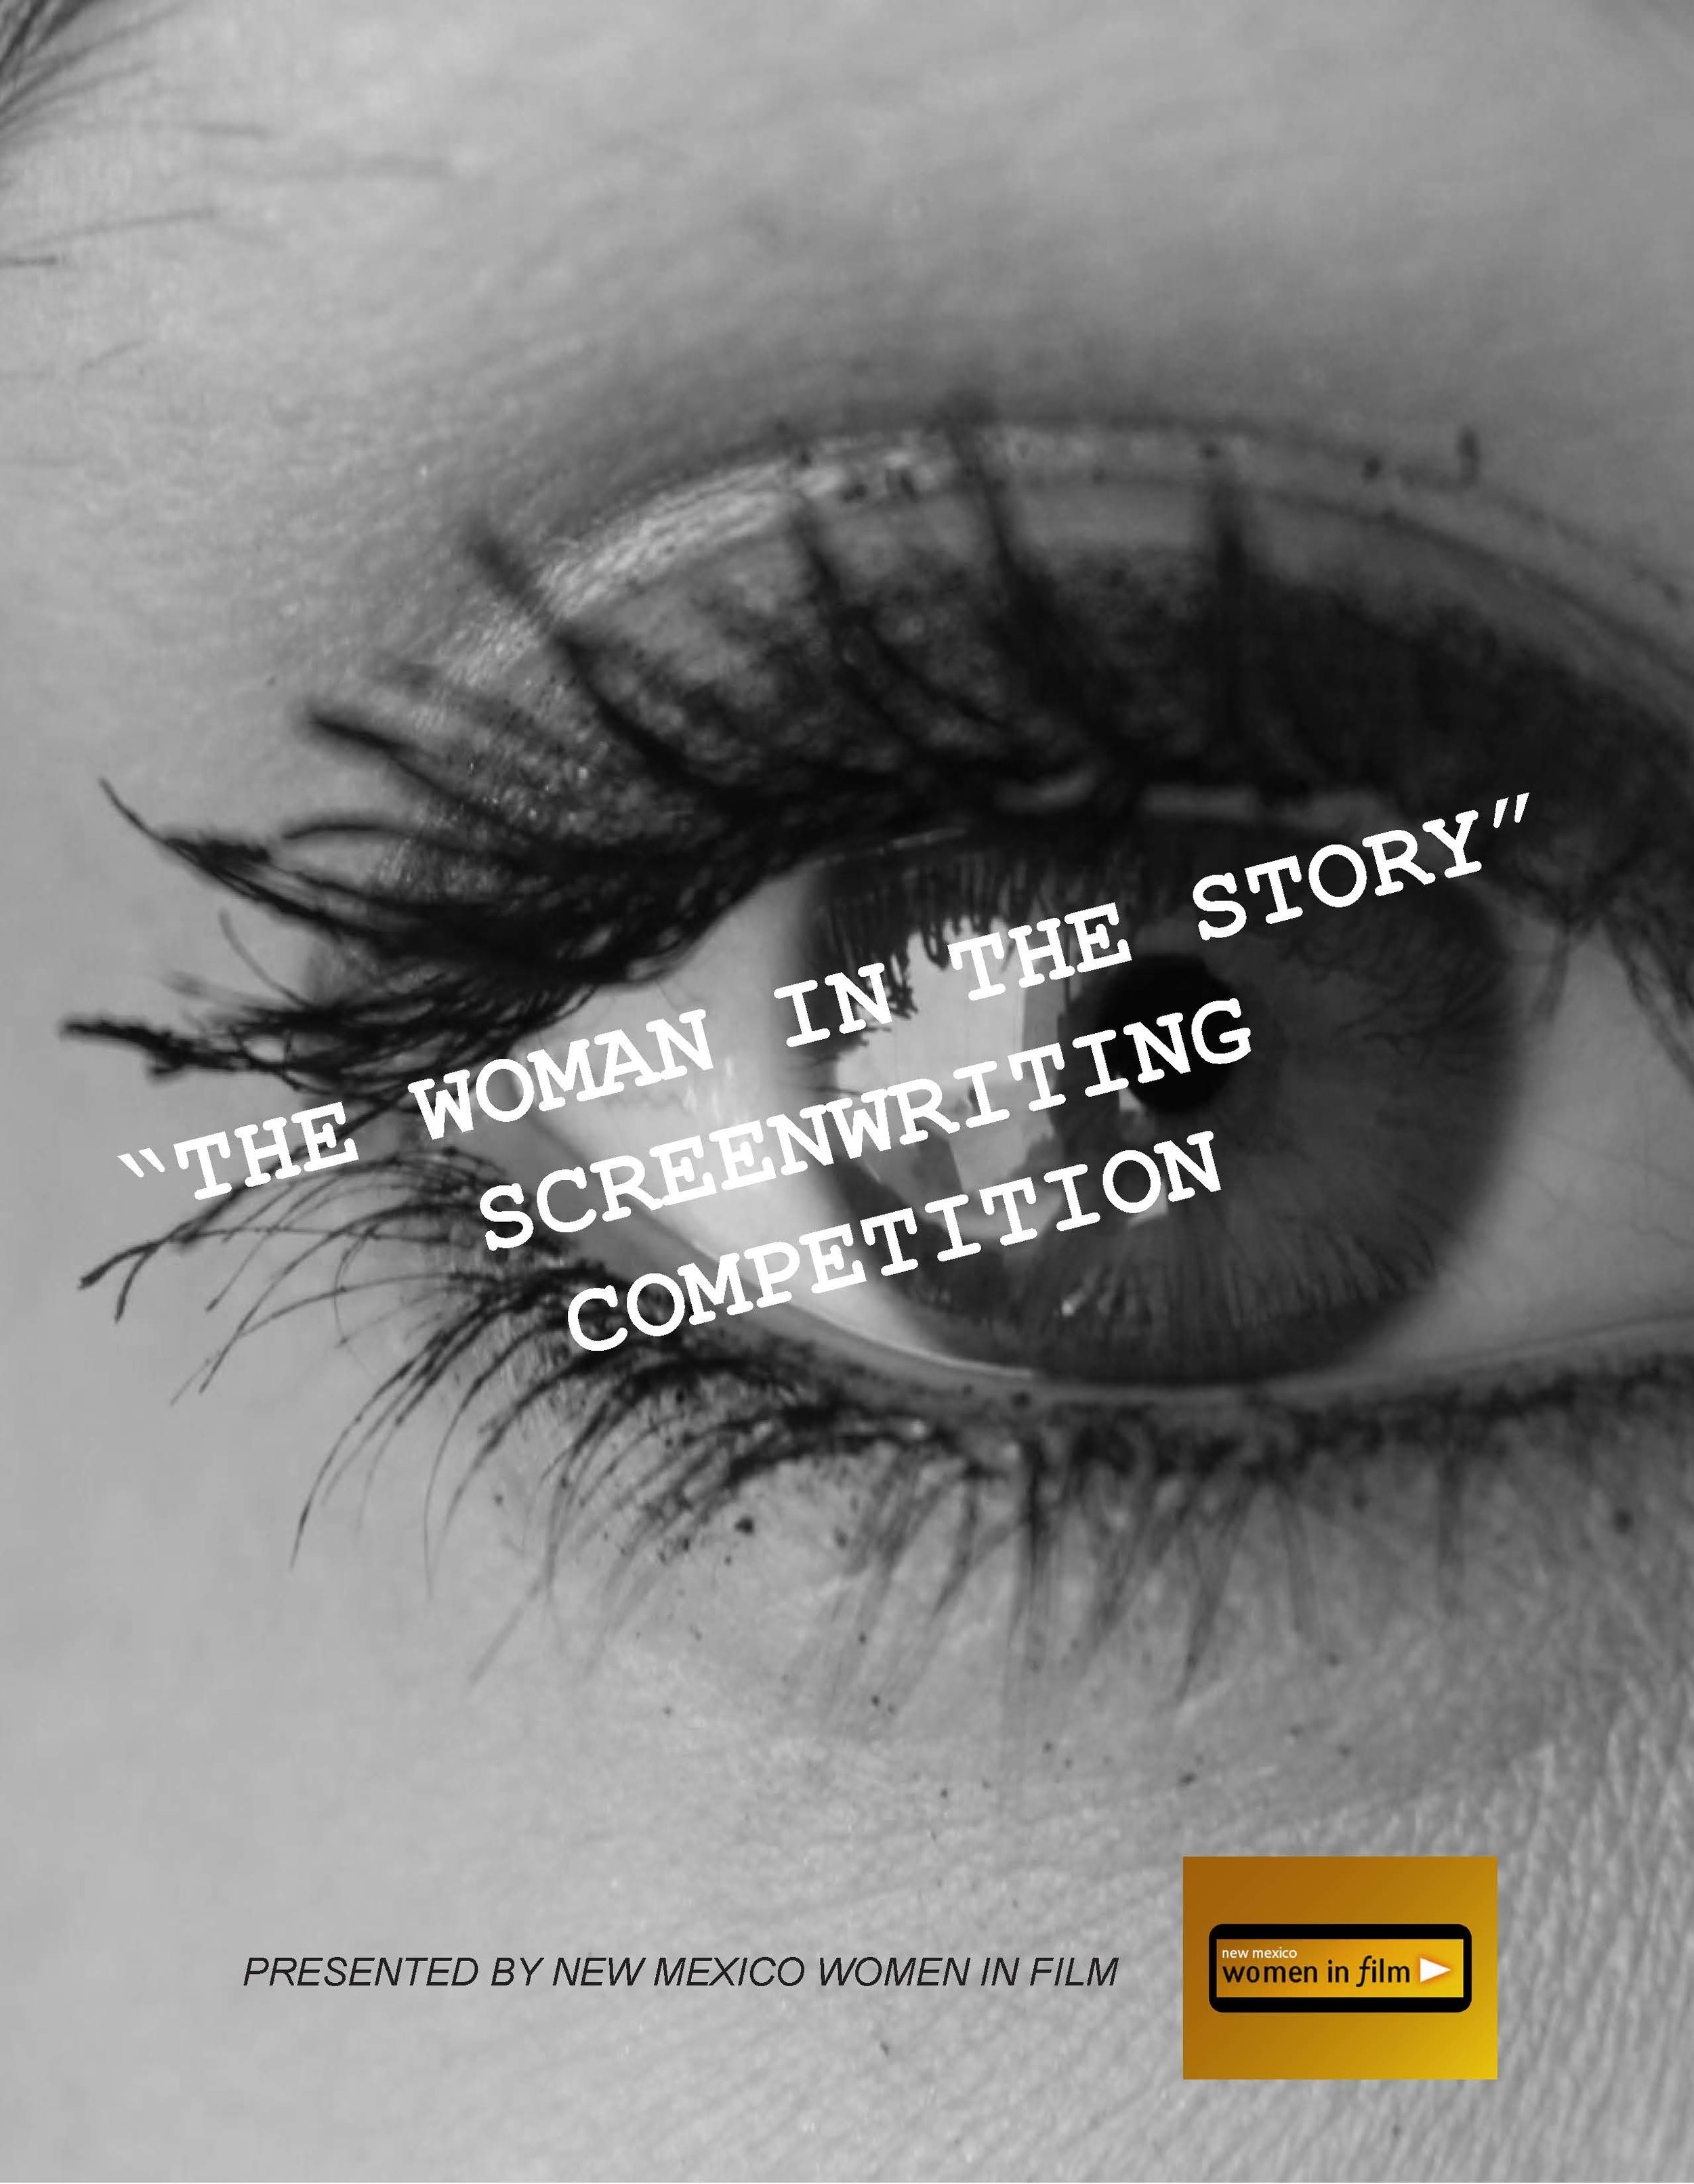 _The Woman in the Story_ Screenwriting Competition Information_090614_Page_1.jpg